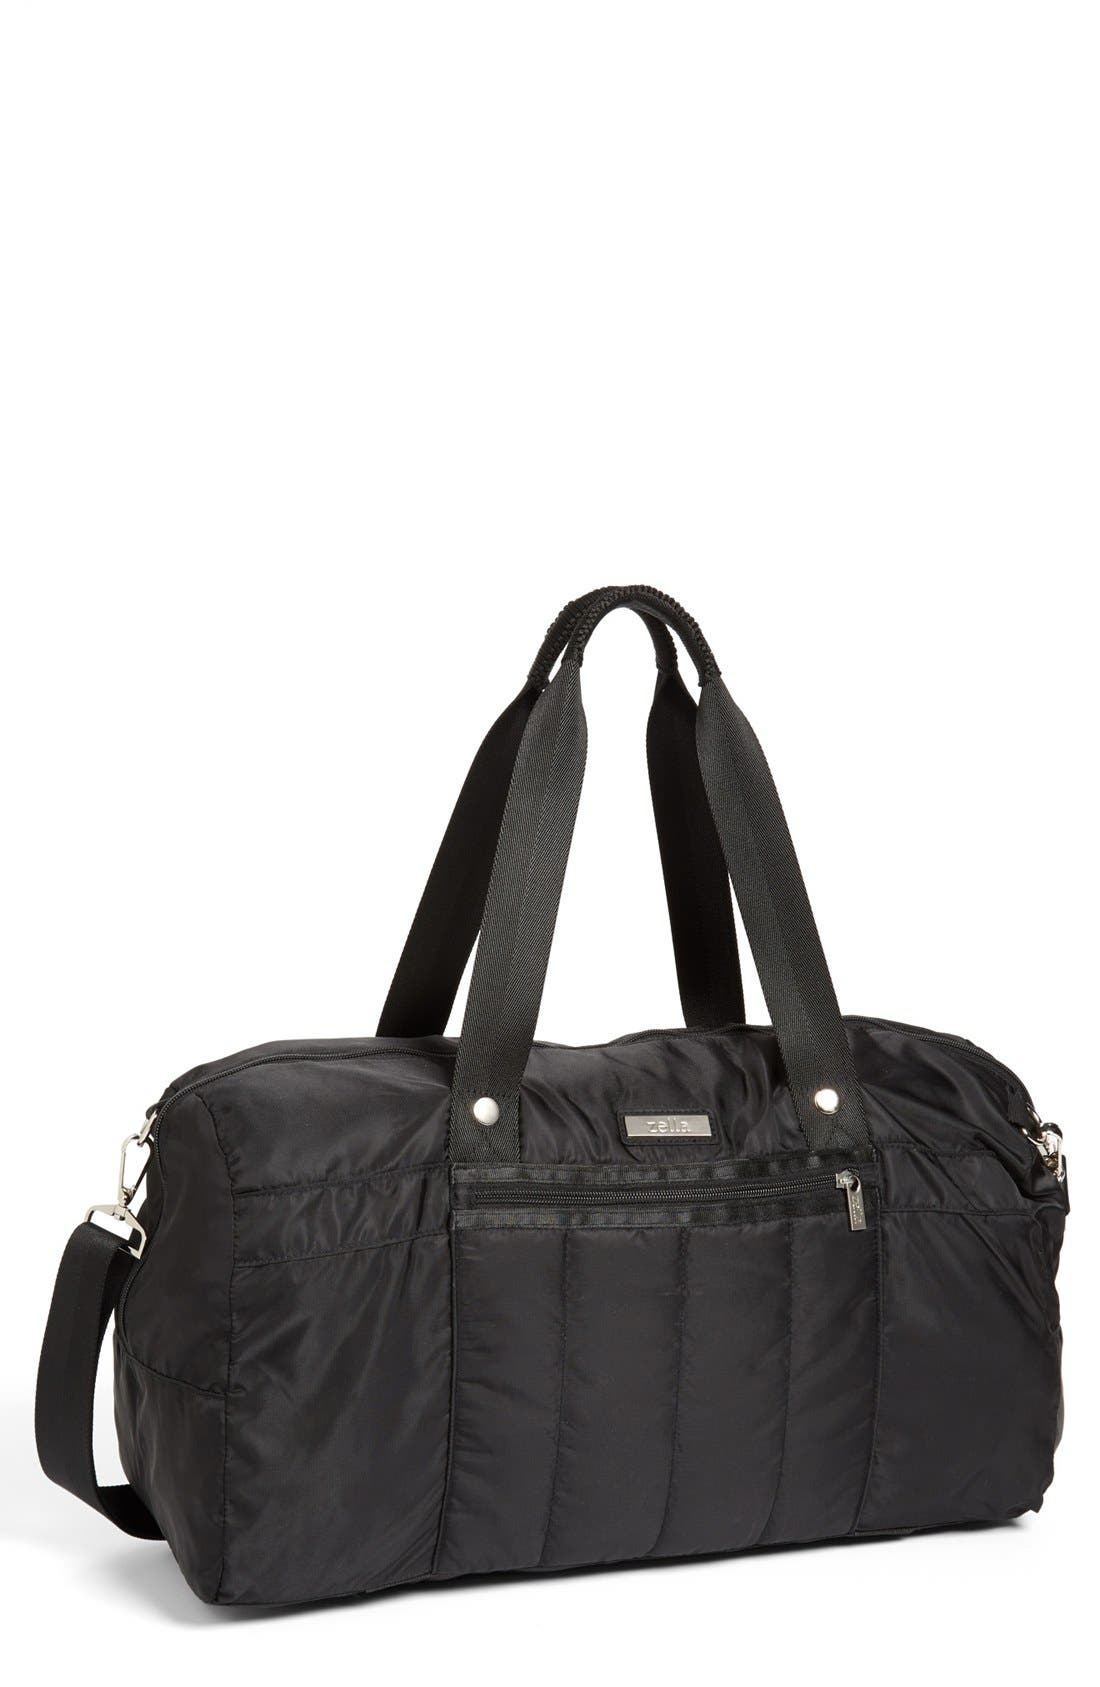 Alternate Image 1 Selected - Zella Quilted Gear Duffel Bag